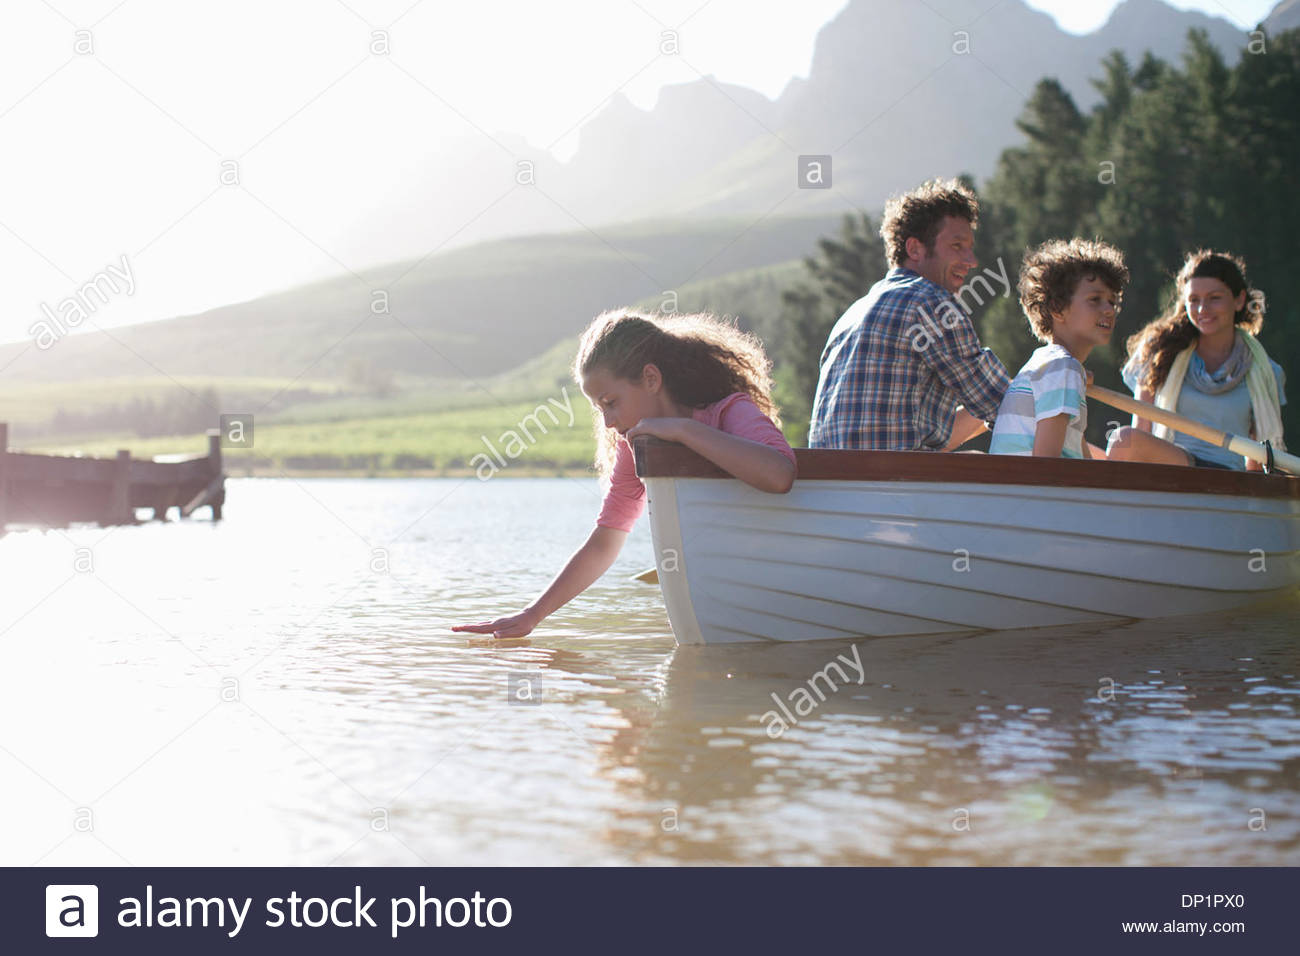 Family in rowboat on lake Stock Photo